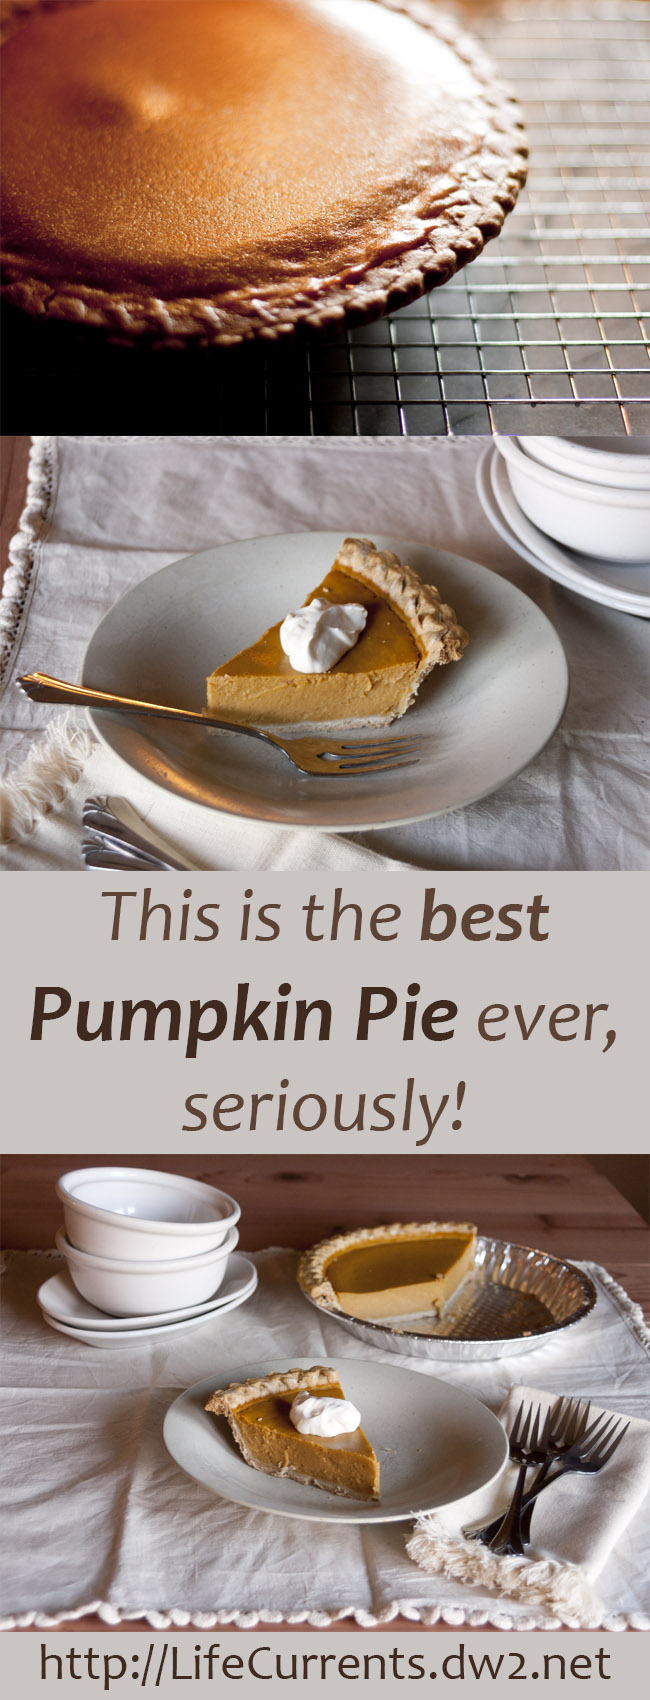 This is the best Pumpkin Pie! Make your own this Thanksgiving and Christmas, you'll be happy you did!